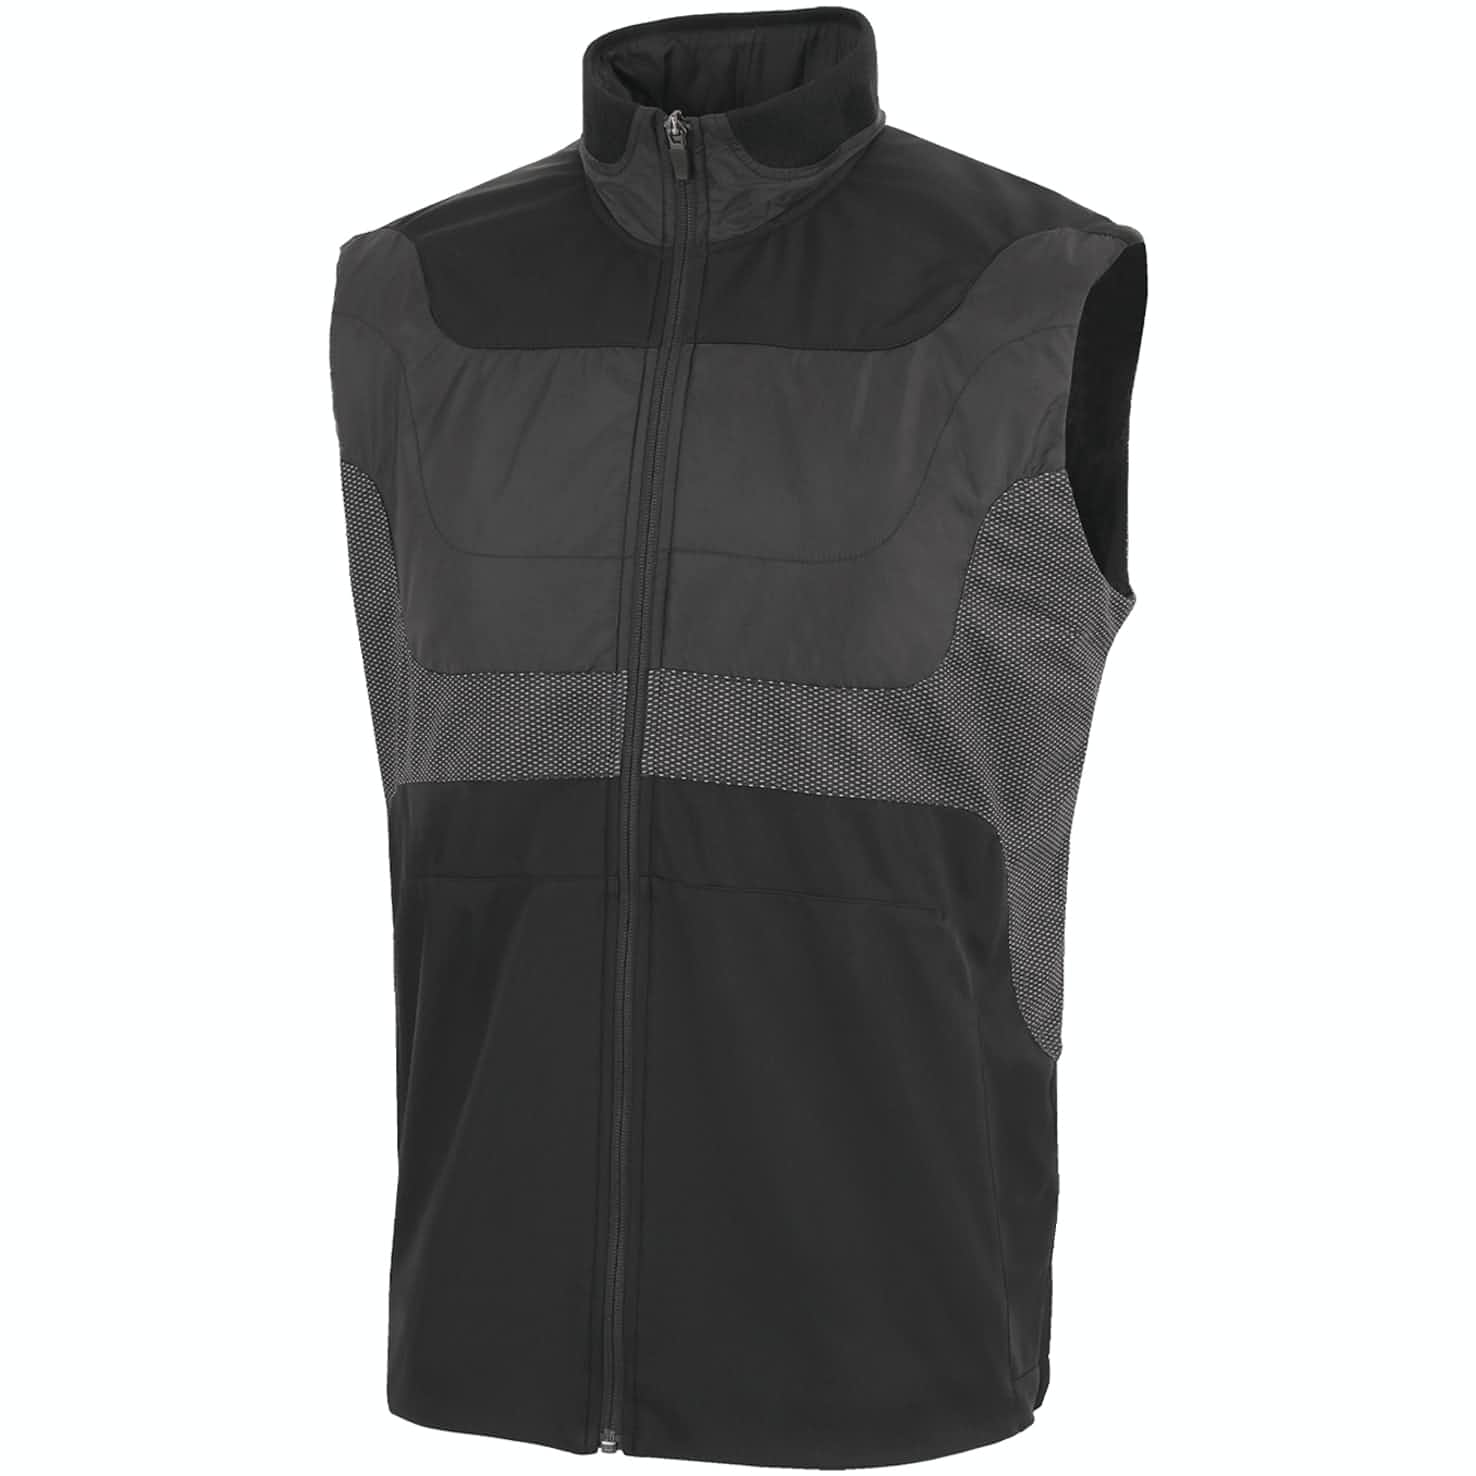 Louis Interface-1 Bodywarmer Black/Sharkskin - AW19